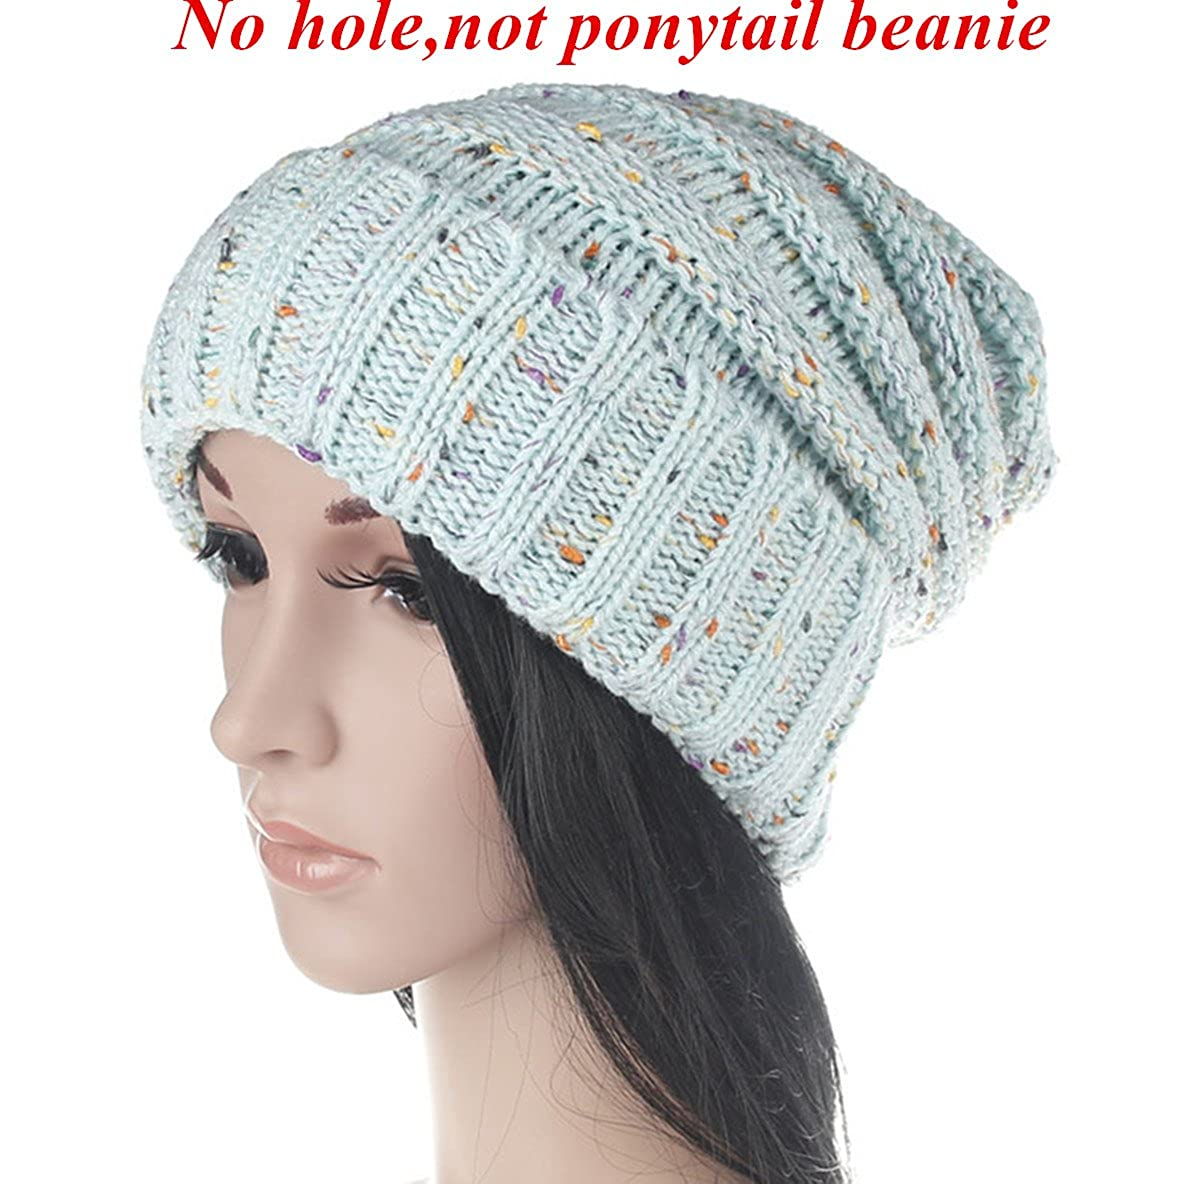 Beanie Hat With Ponytail Hole - Parchment N Lead 6f6127bbcfe0